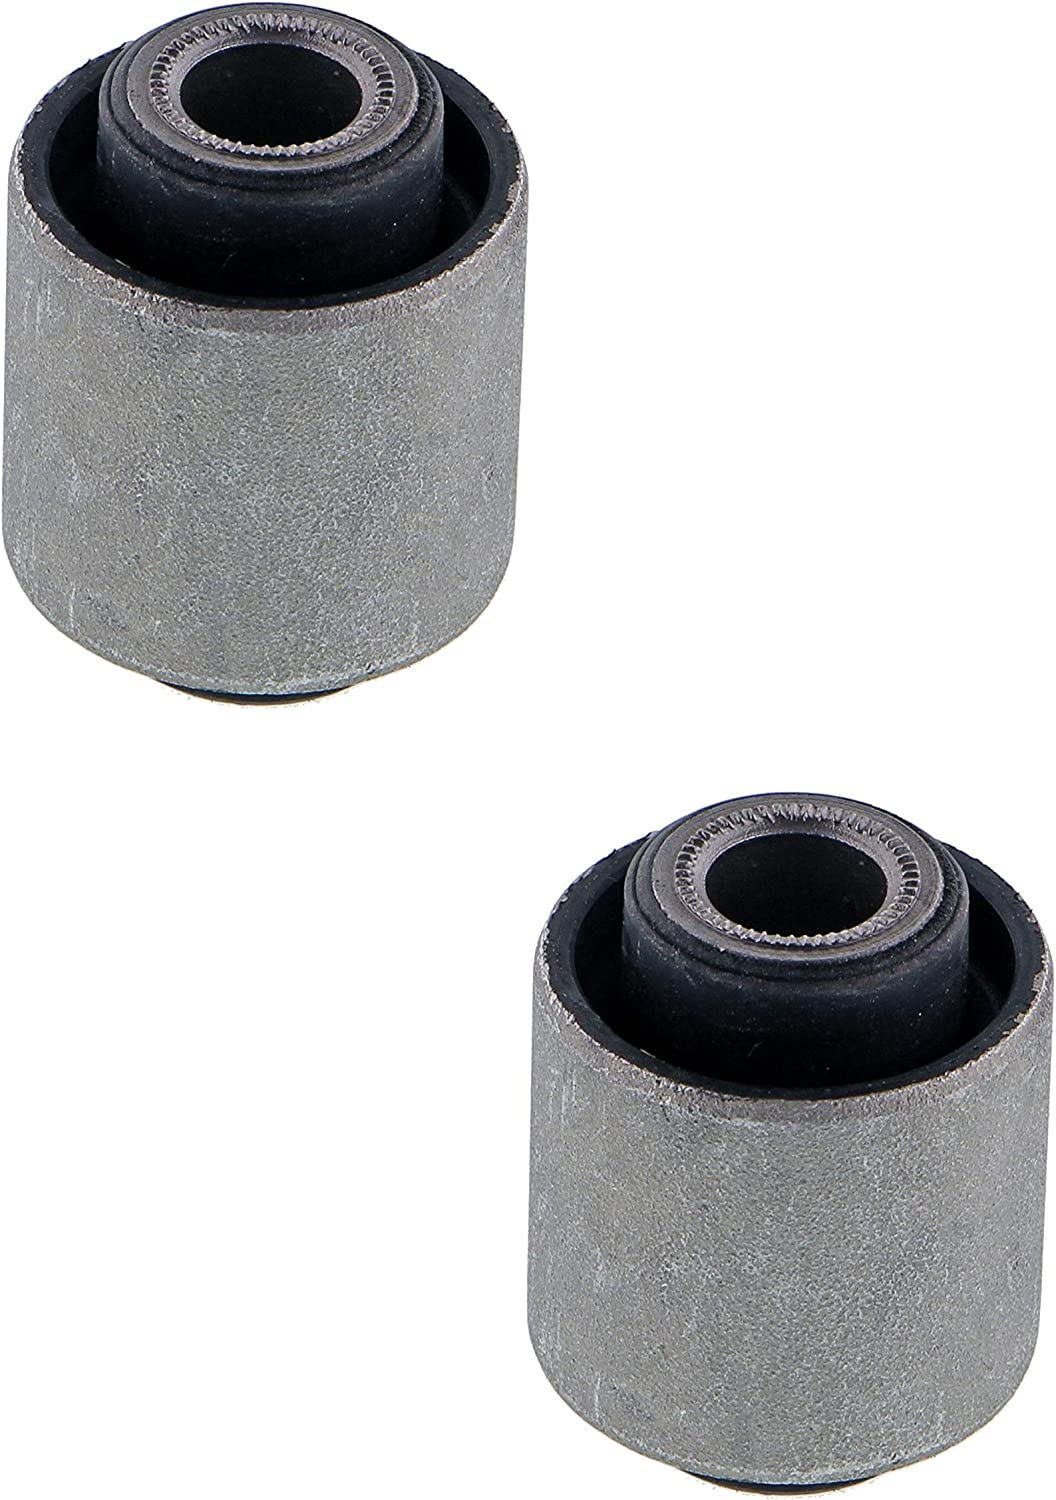 New Free Superior Shipping Pair Set of 2 Rear Lower Shock For Mevotech Ca Bushings Absorber